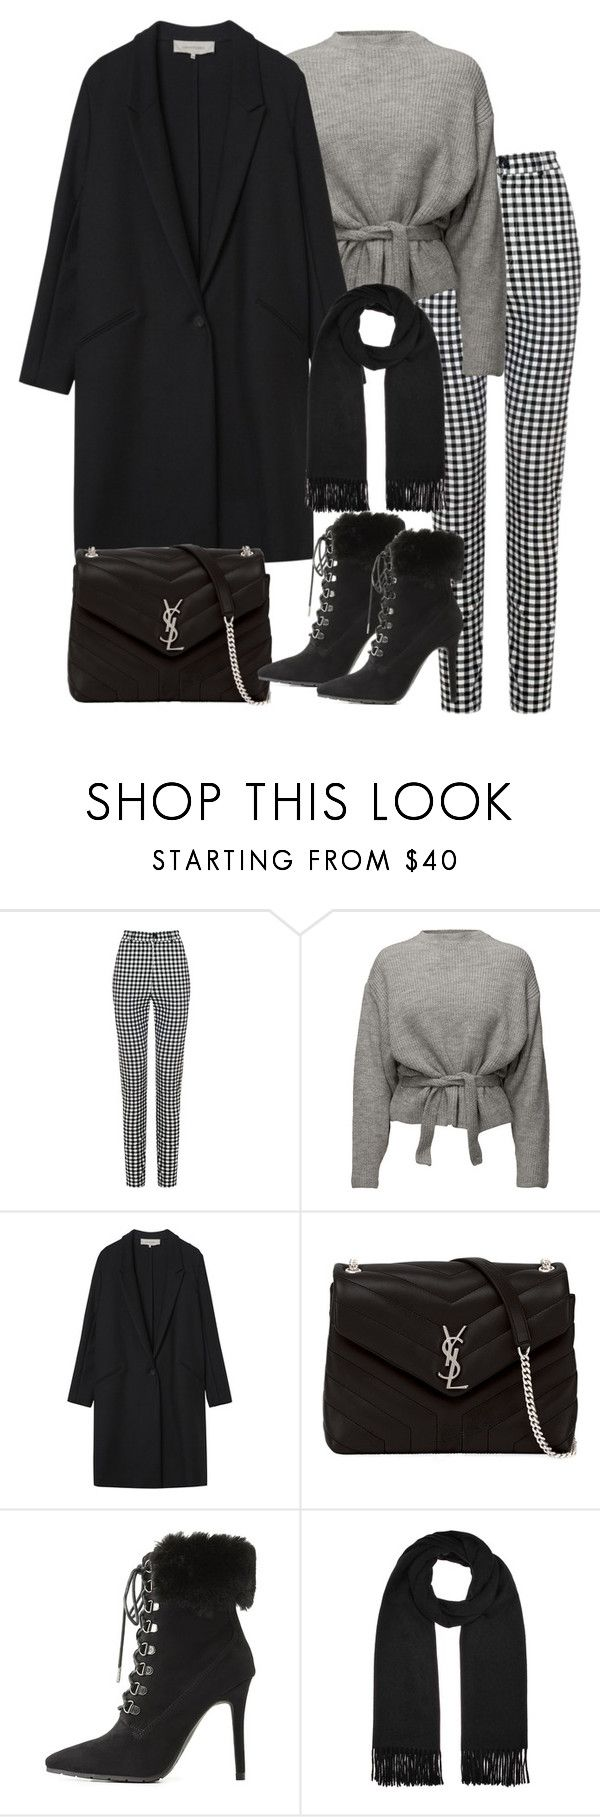 """Untitled #4939"" by theeuropeancloset ❤ liked on Polyvore featuring Gérard Darel, Yves Saint Laurent, Charlotte Russe and Acne Studios"